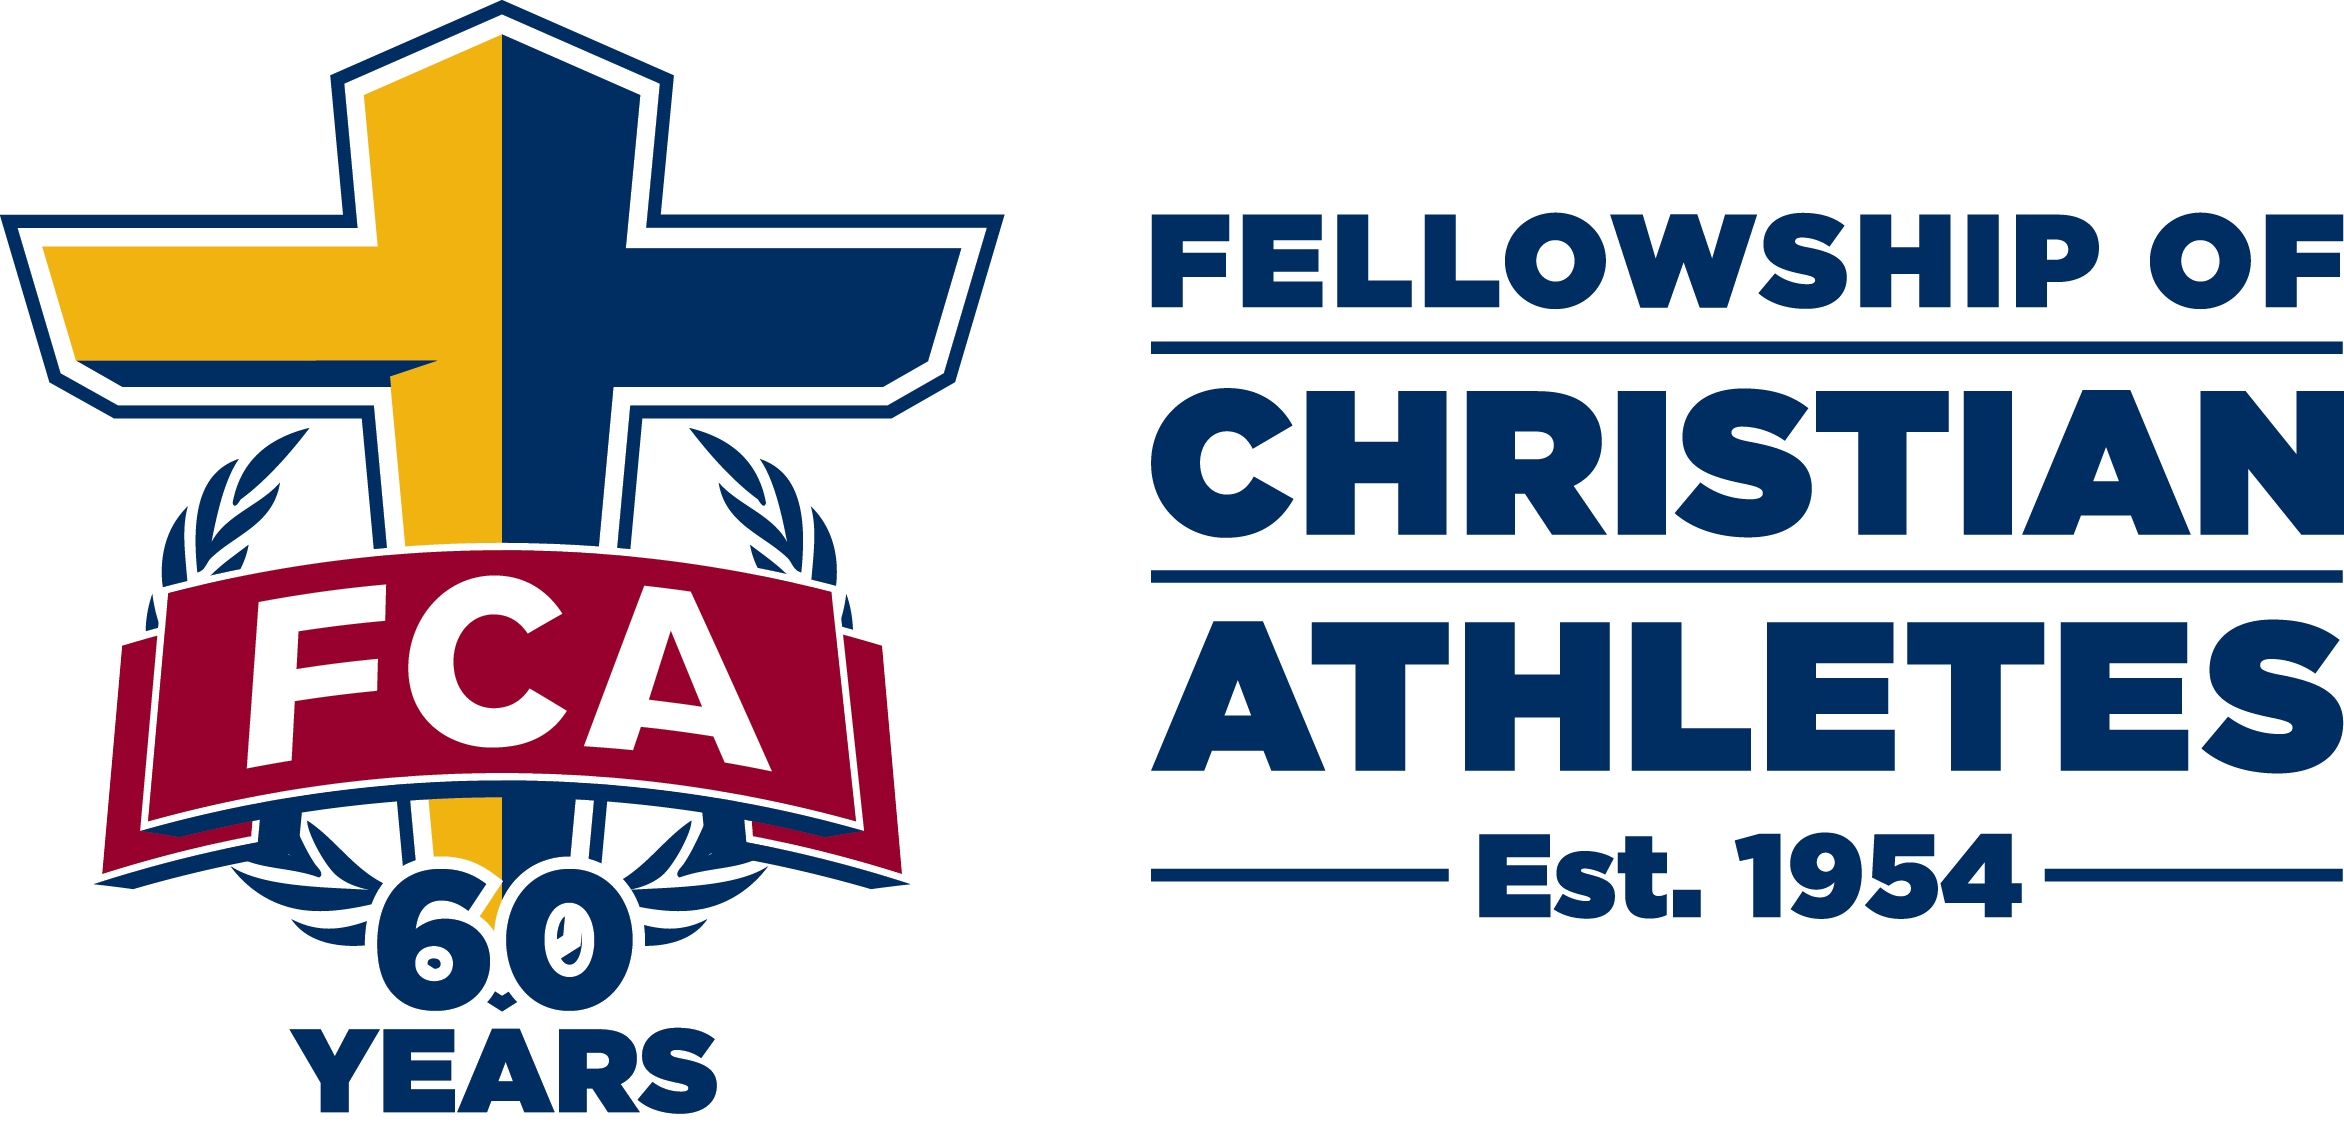 Christian vector logo. Fca updates logos fellowship